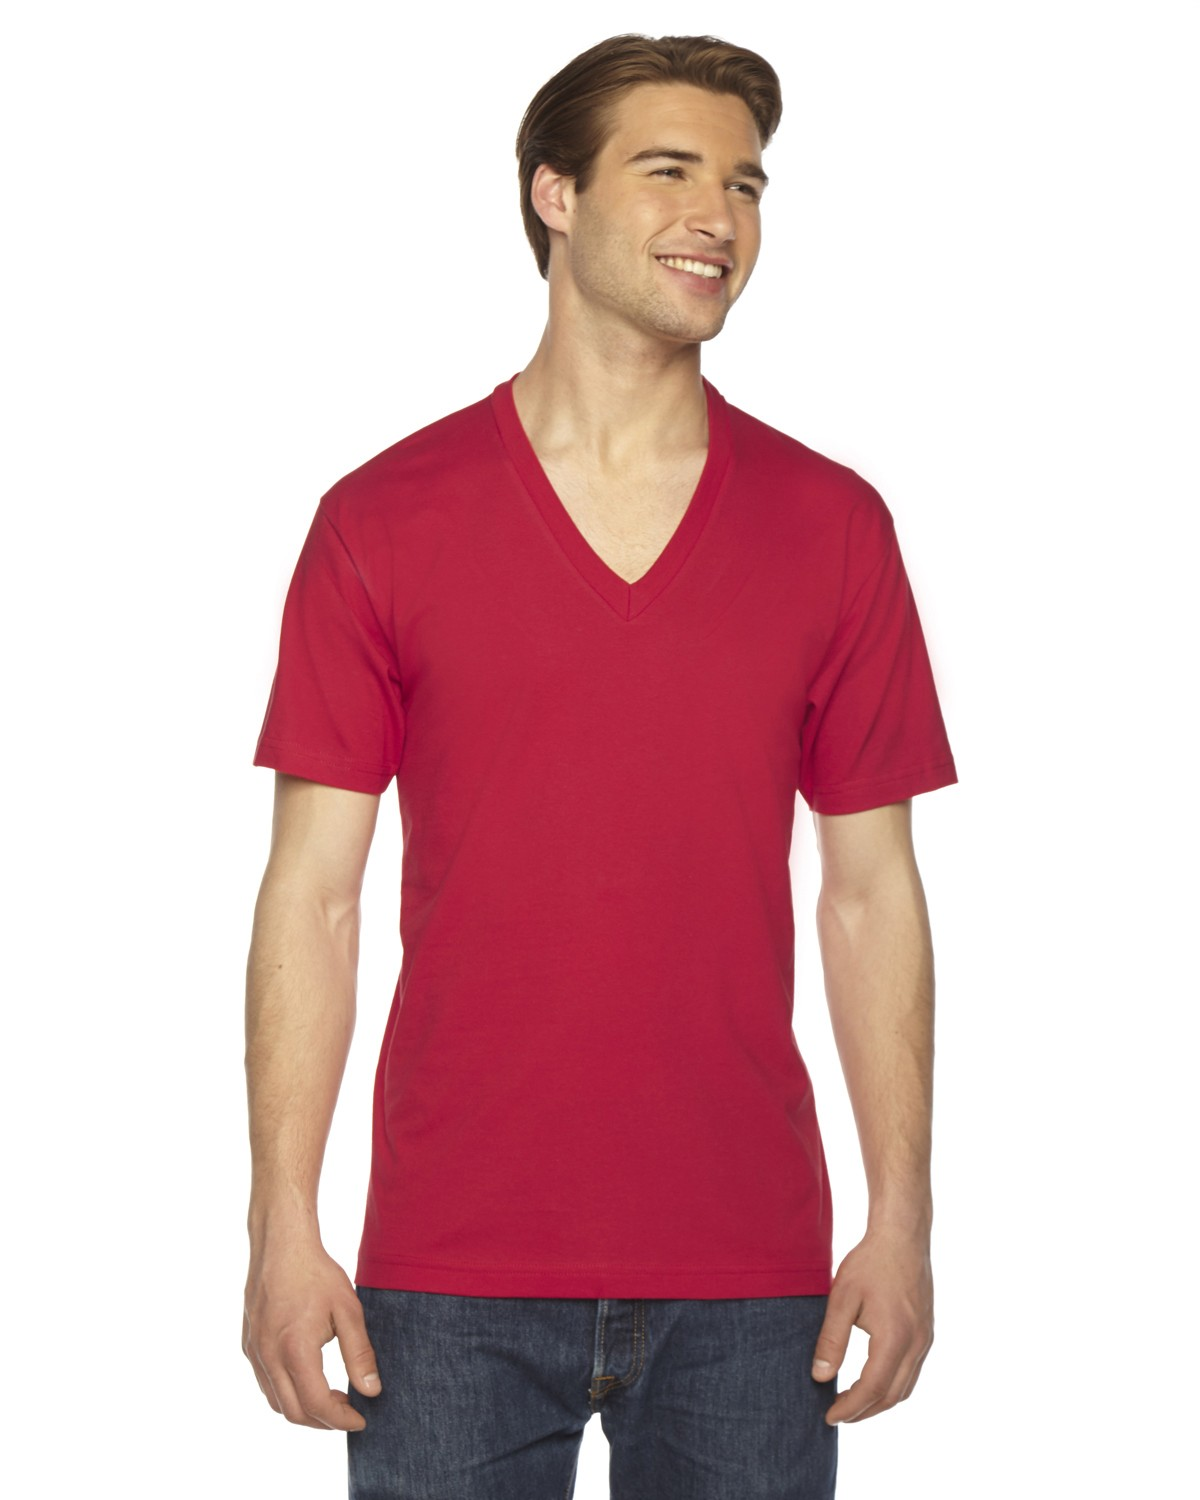 2456W American Apparel RED